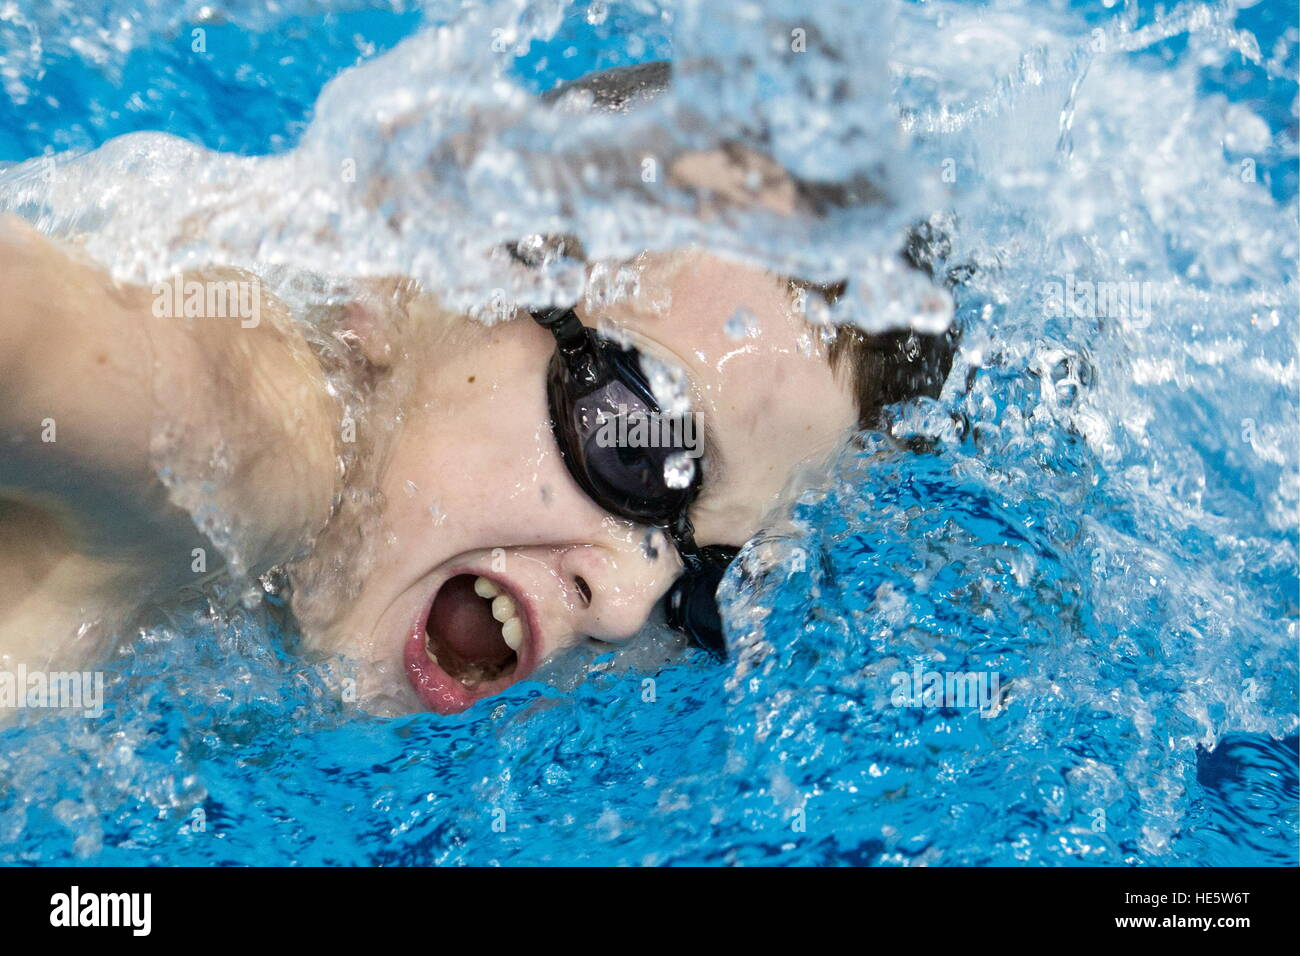 Omsk, Russia. 16th Dec, 2016. A participant in a swimming competition at the Omsk Cadet Corps. © Dmitry Feoktistov/TASS/Alamy Stock Photo